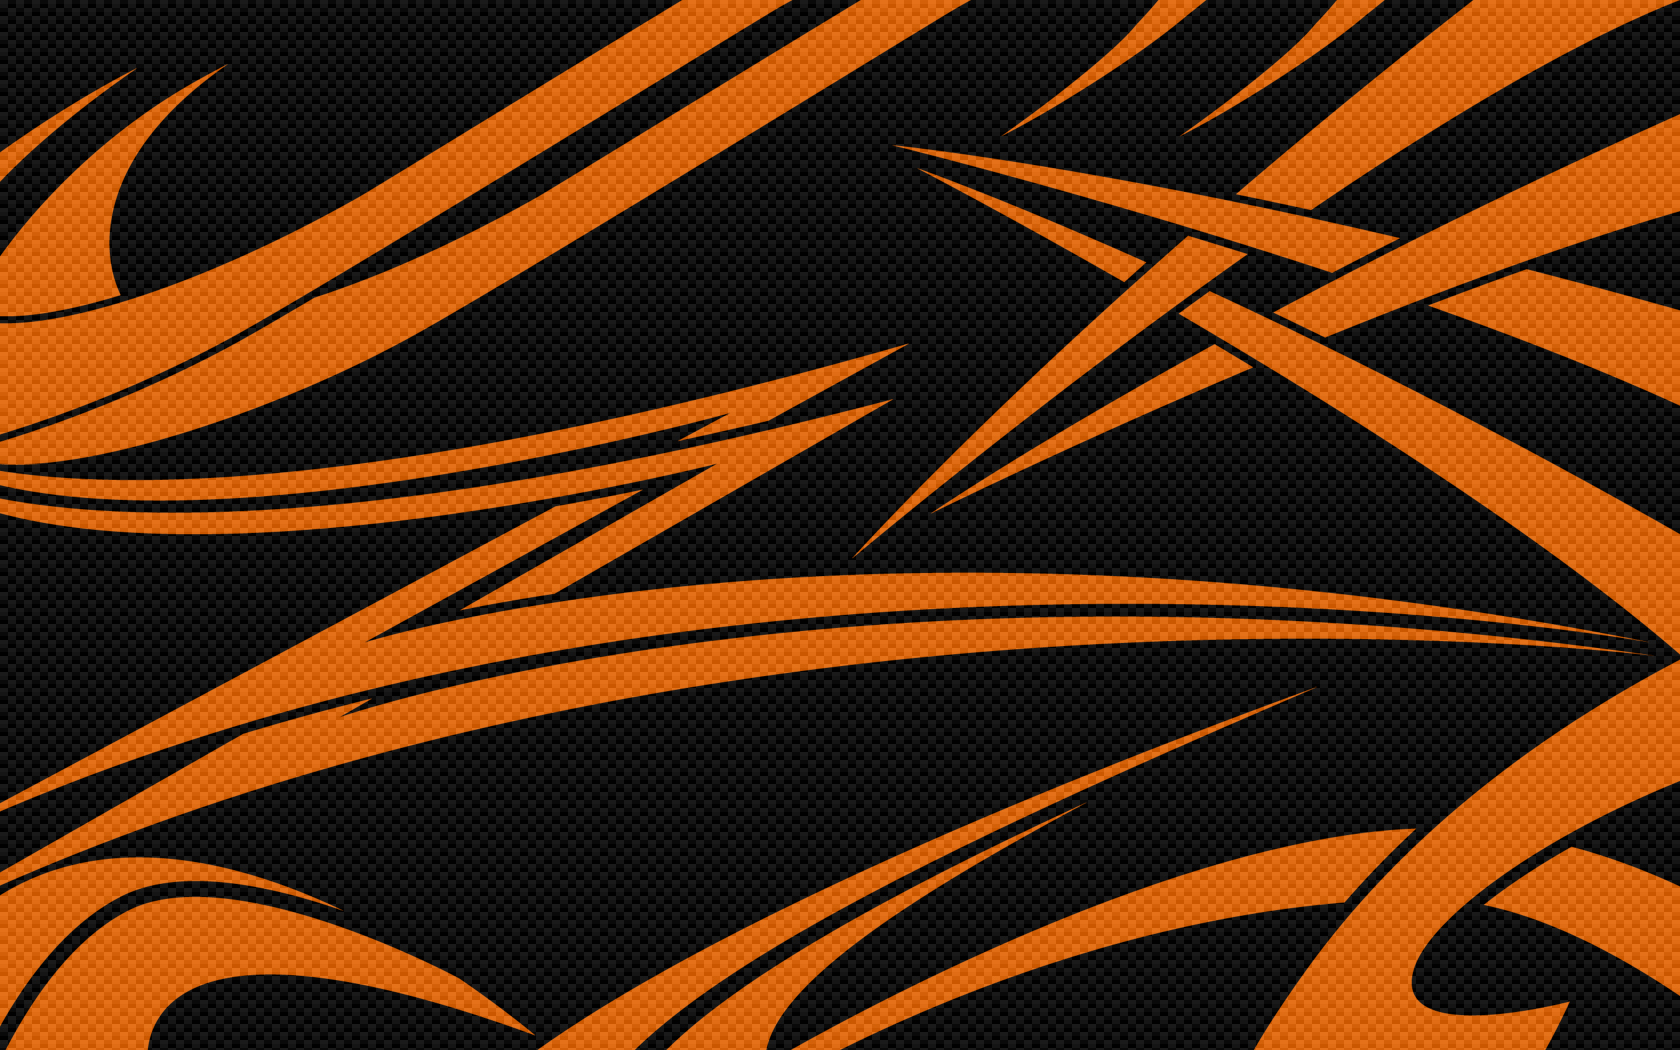 1680x1050 Black Orange Carbon desktop PC and Mac wallpaper 1680x1050